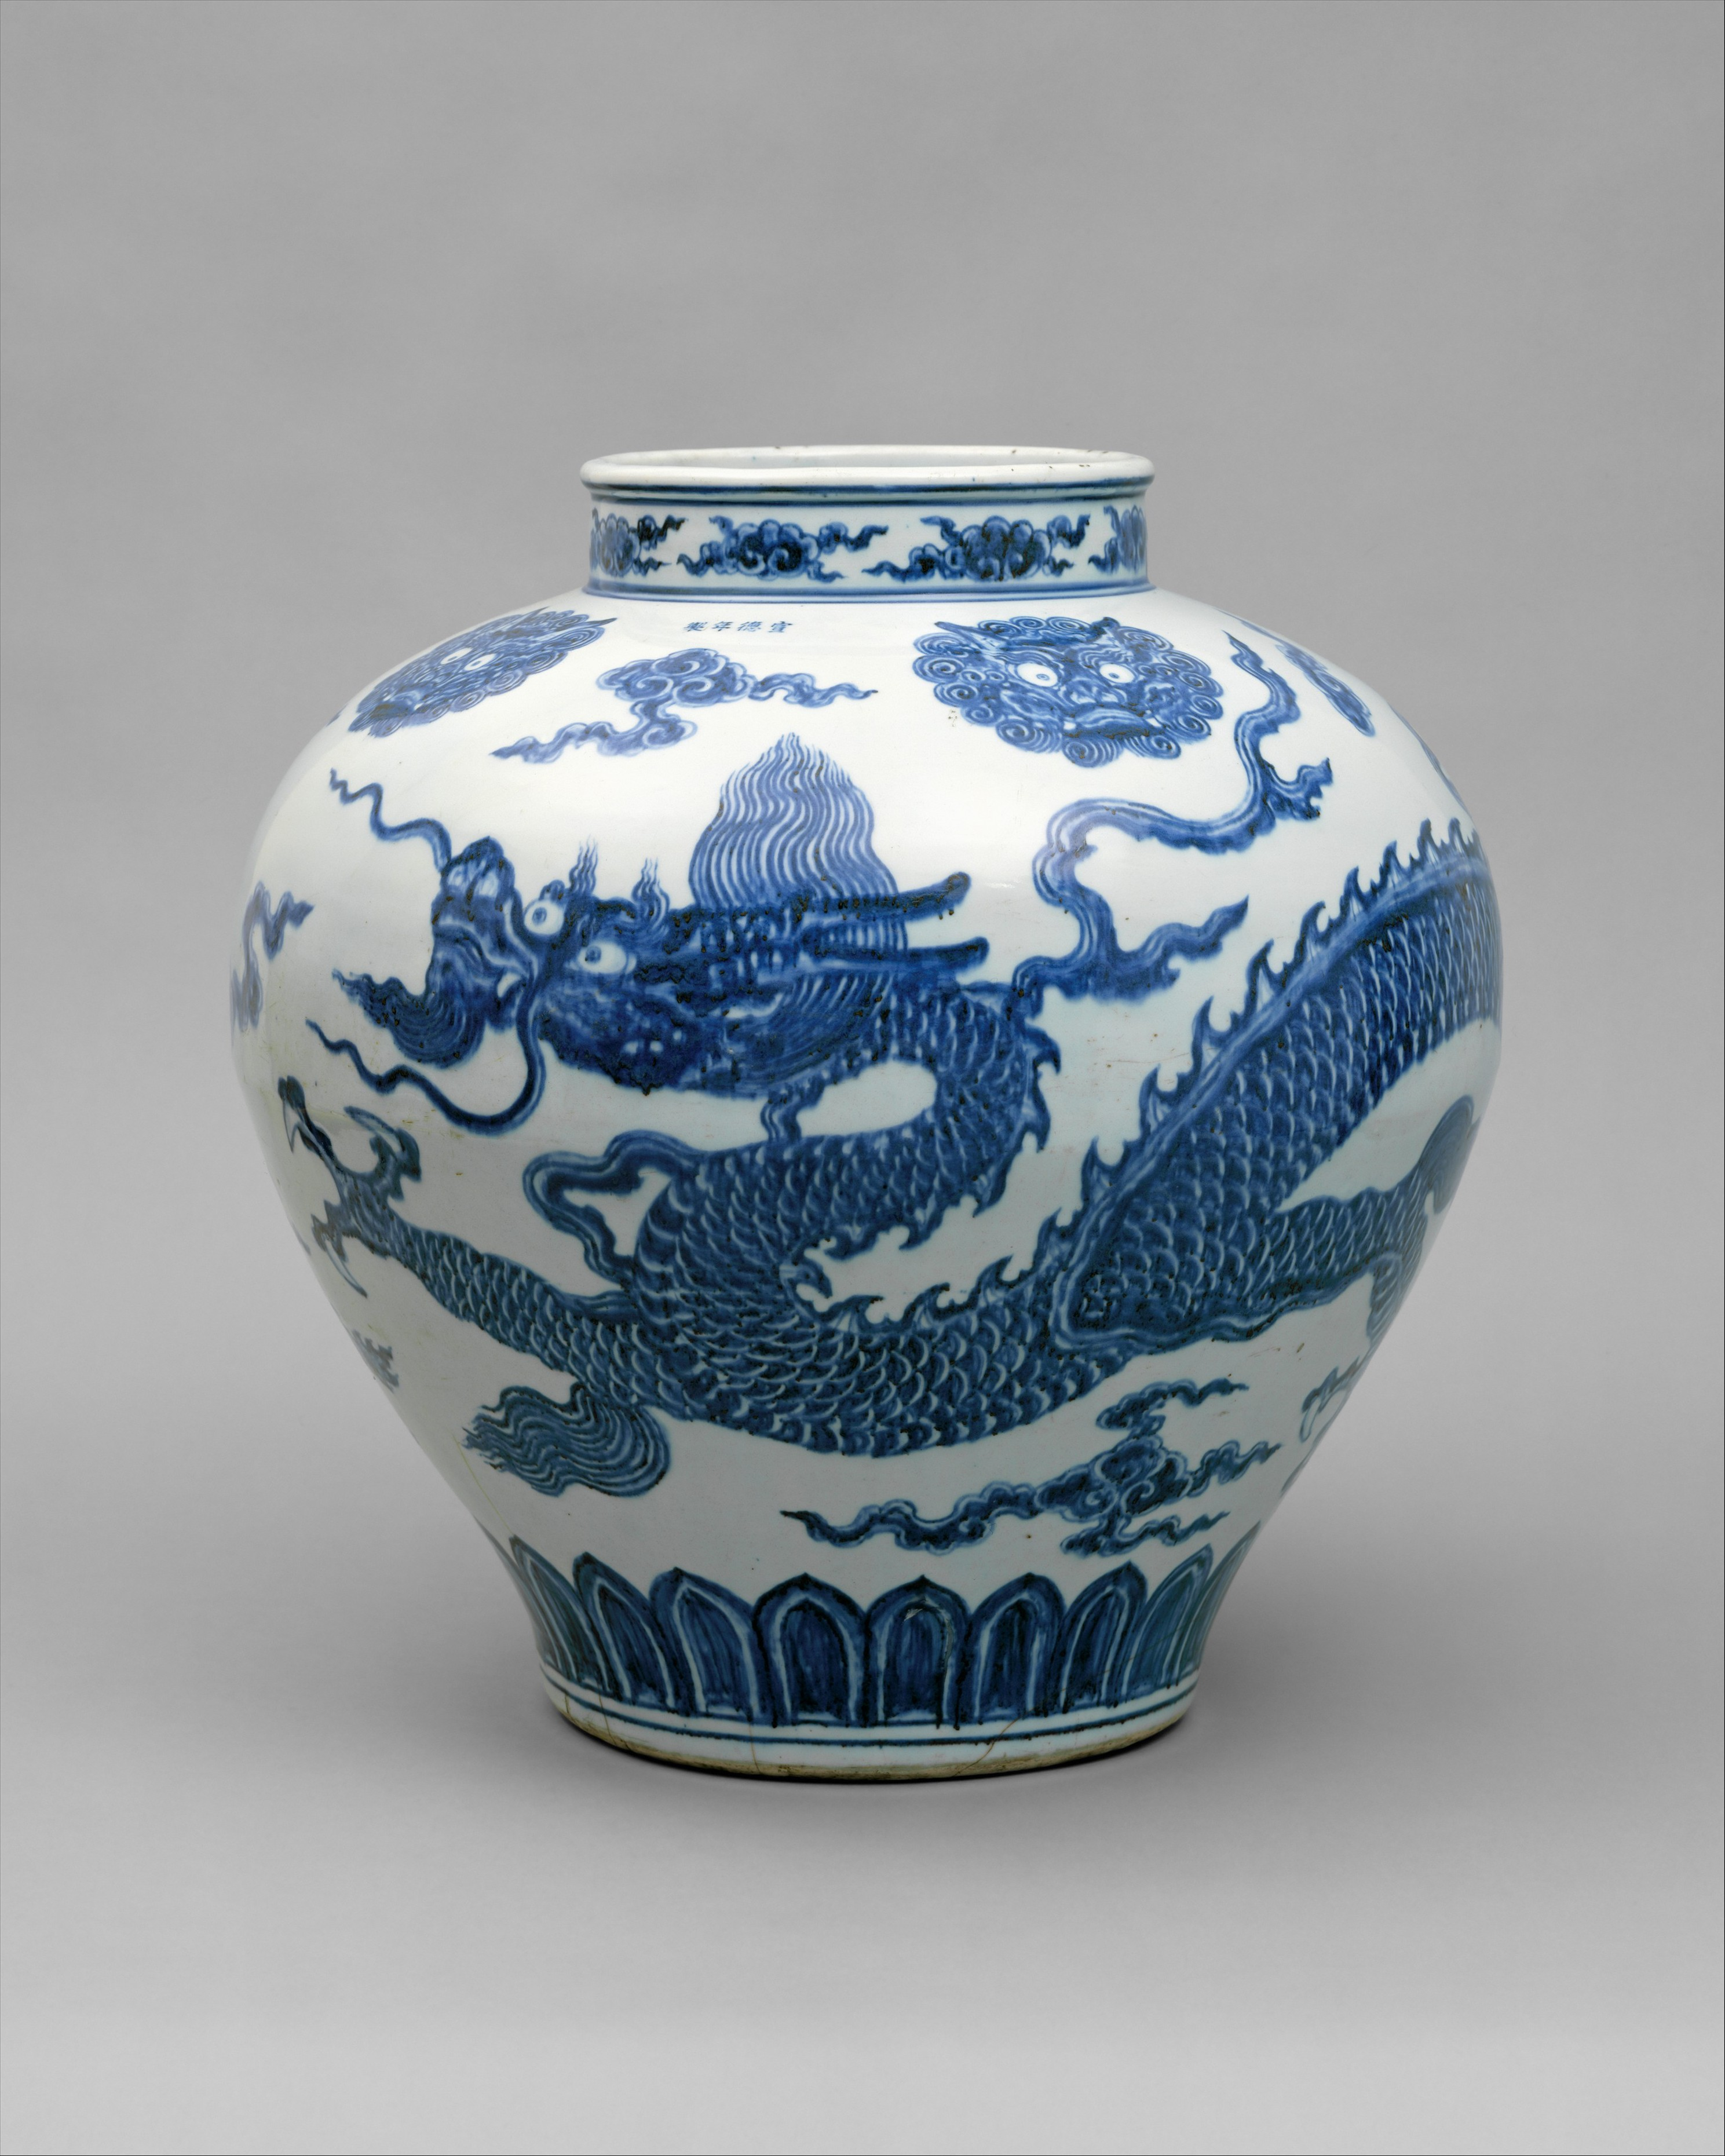 Jar with dragon china ming dynasty 13681644 xuande mark share by email reviewsmspy